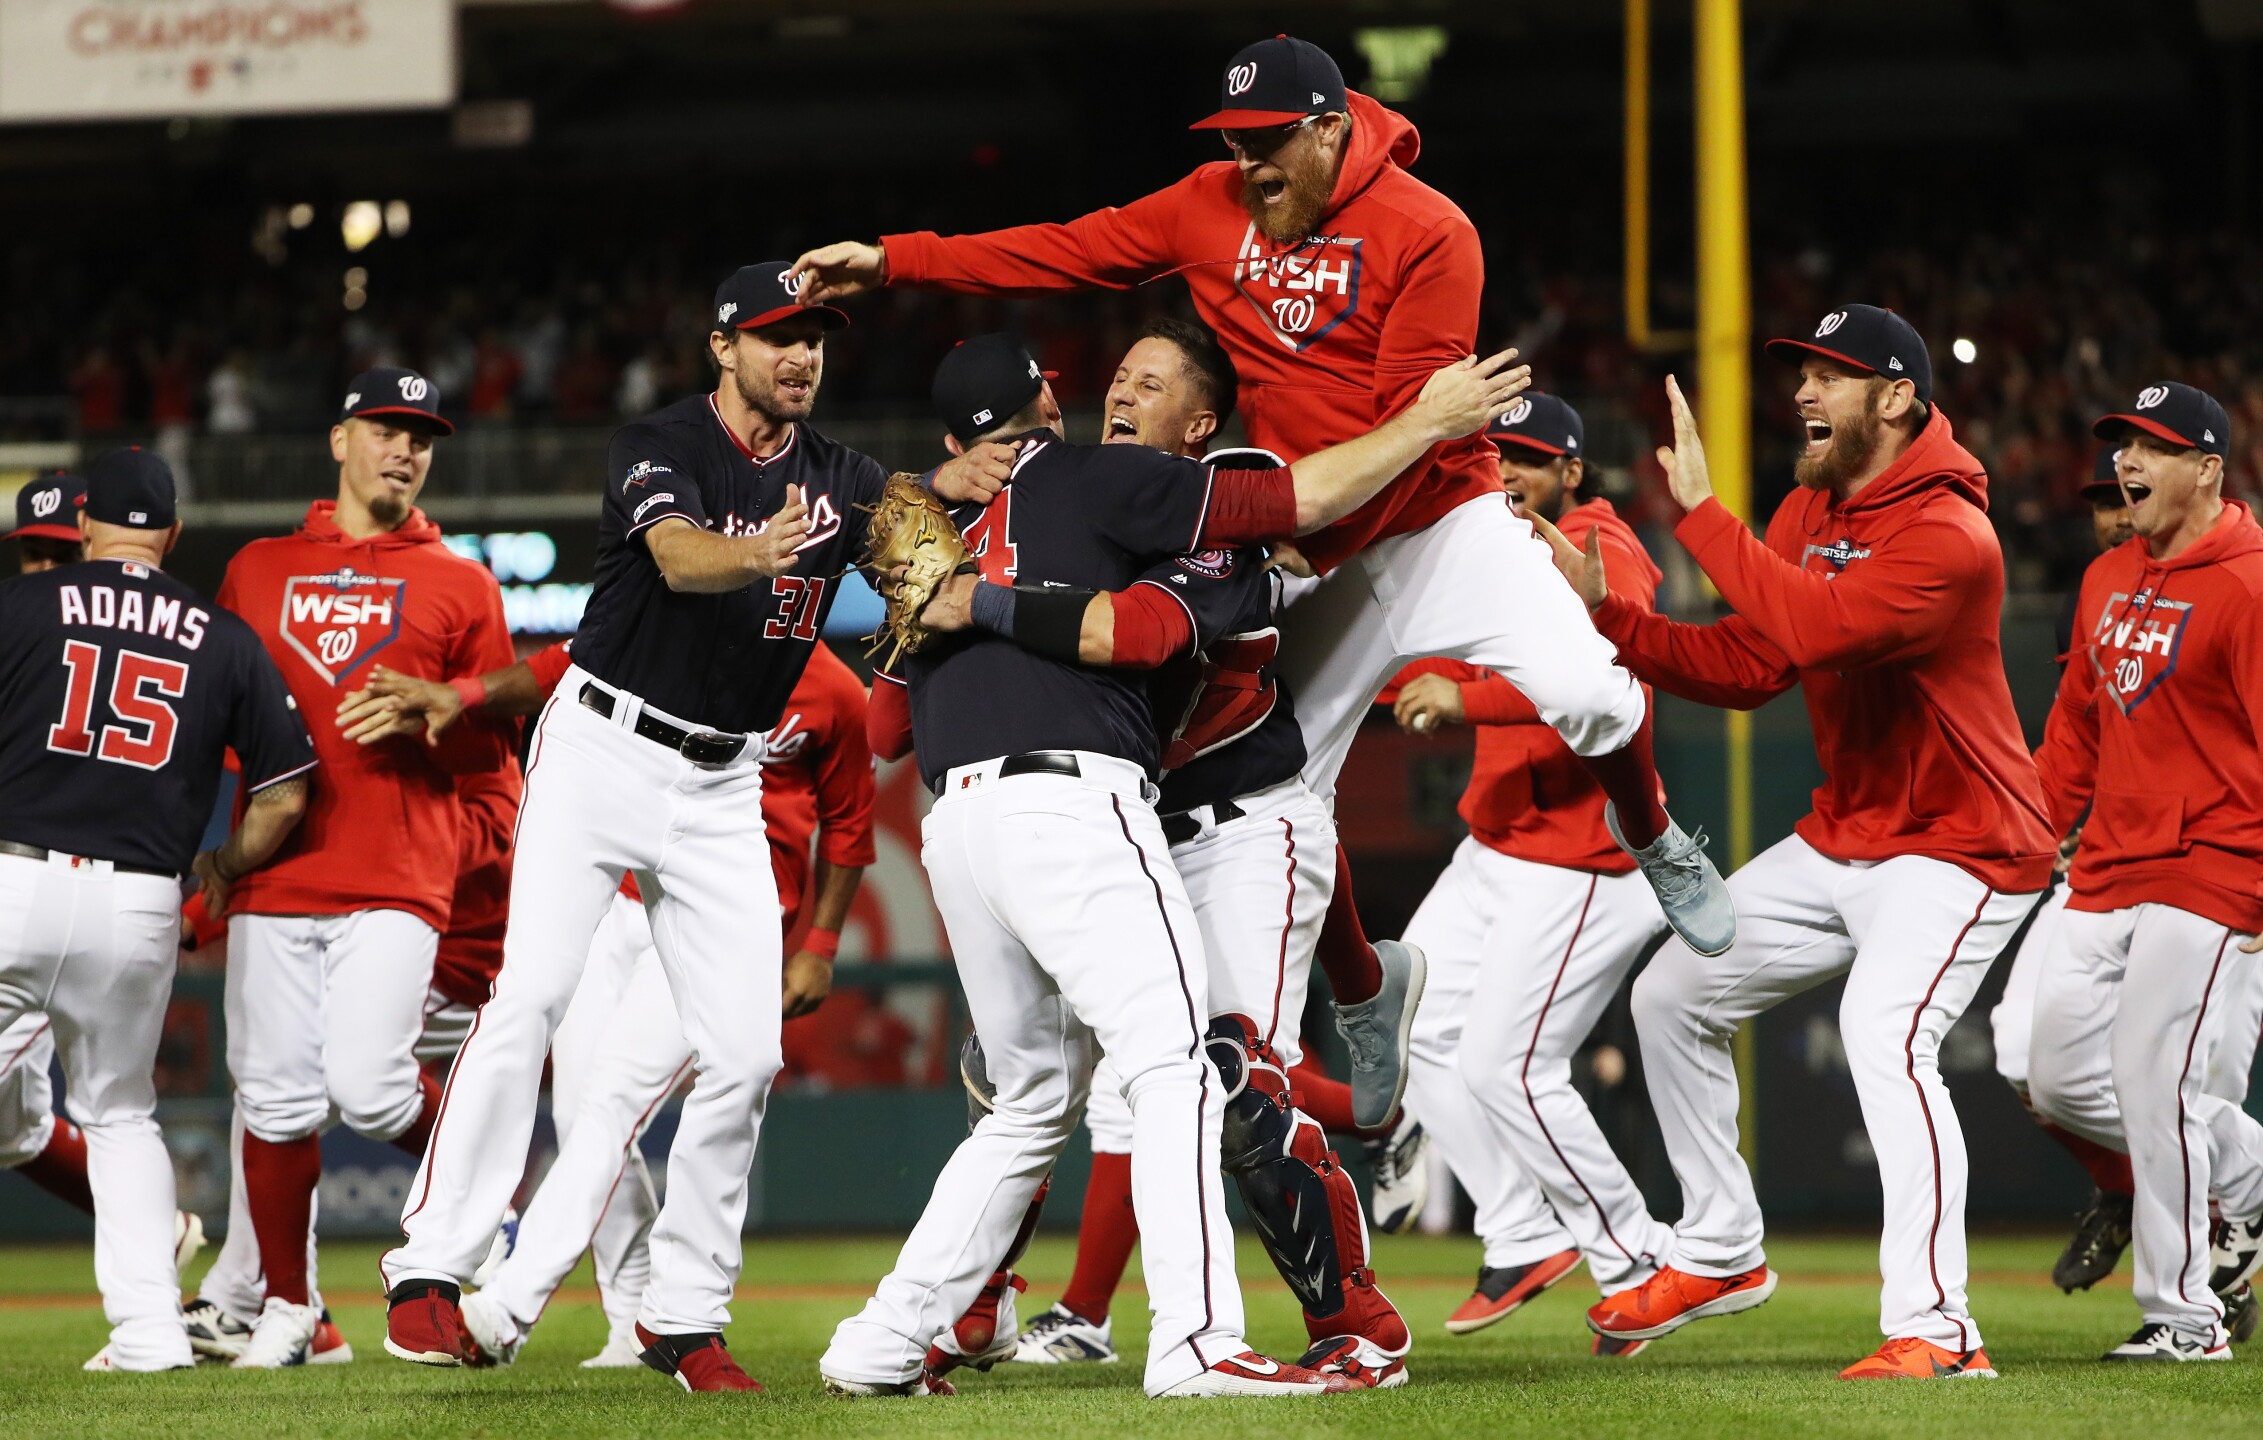 Photos: Photos: Nationals clinch NLCS, World Series to be in D.C. for first time since 1933!